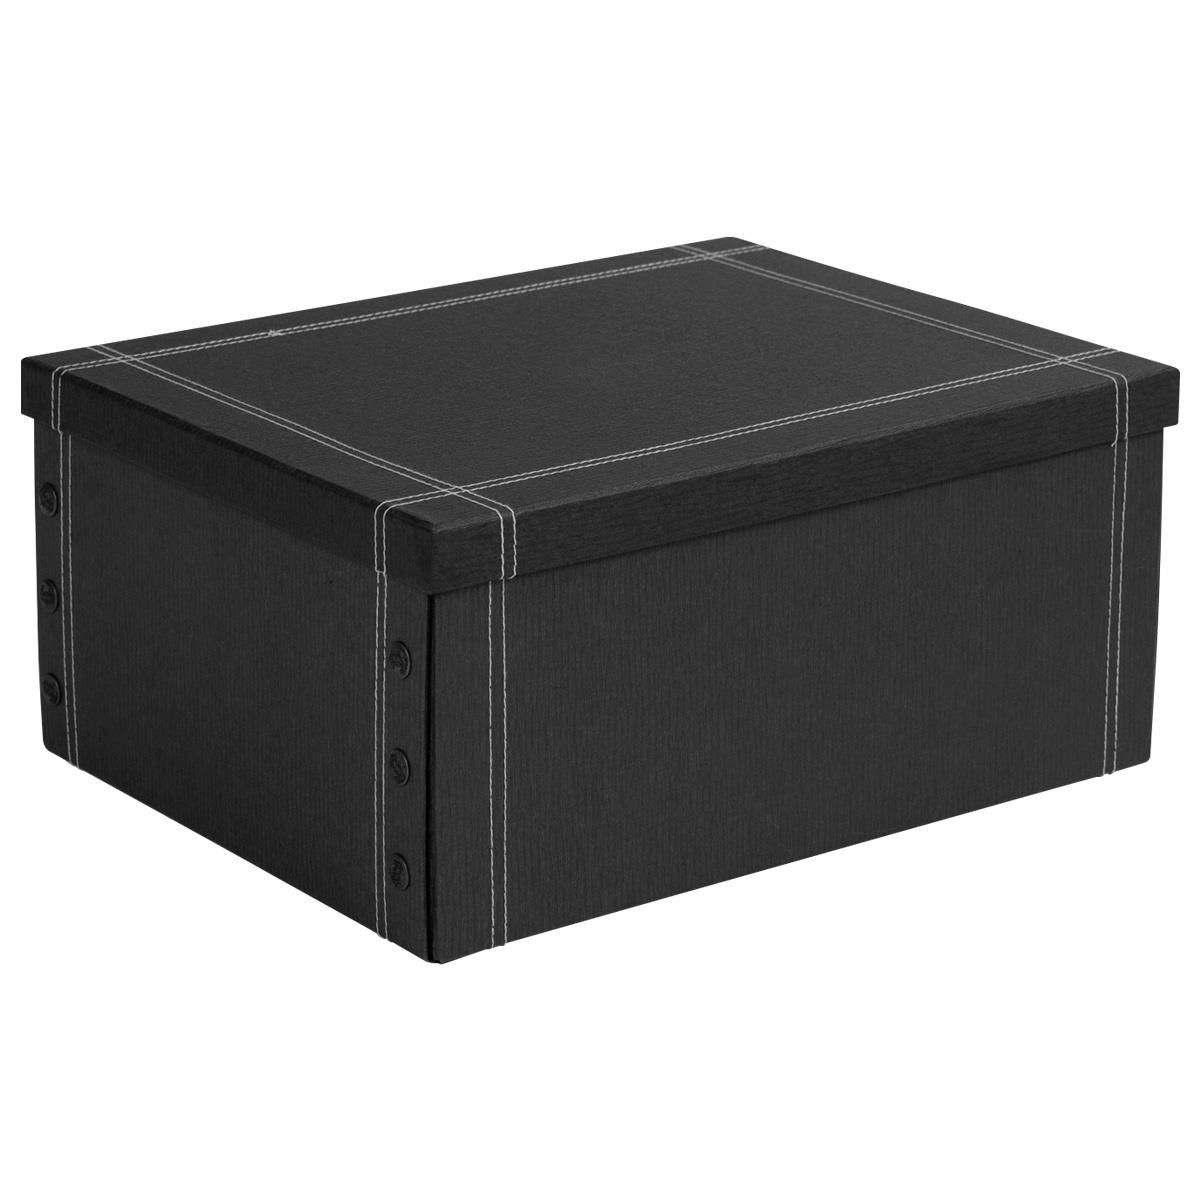 Kanata Keepsake Box Large